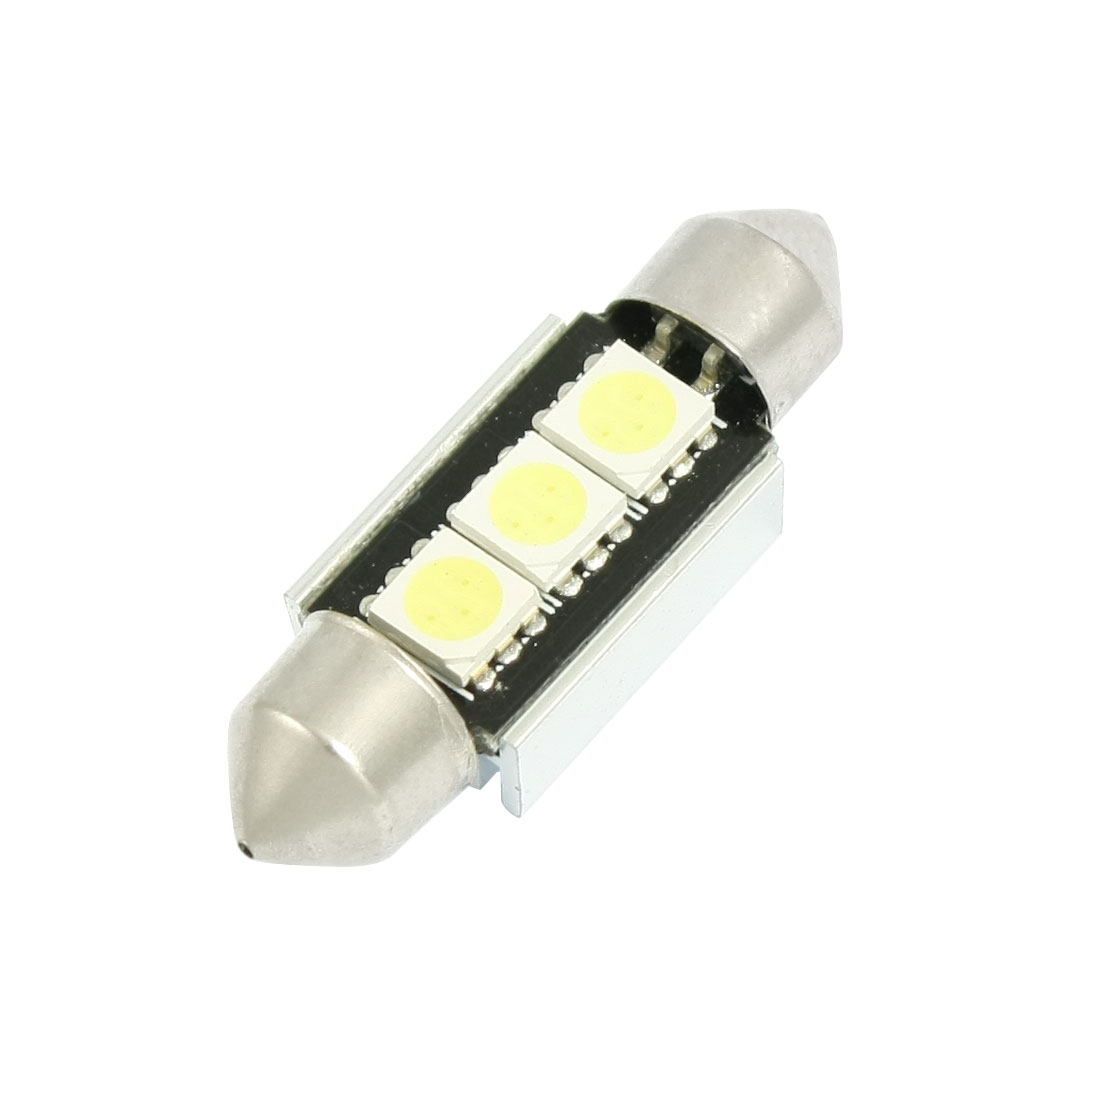 Car 5050 White SMD 3 LED Error Free Canbus License Plate Light 36mm w Heatsink